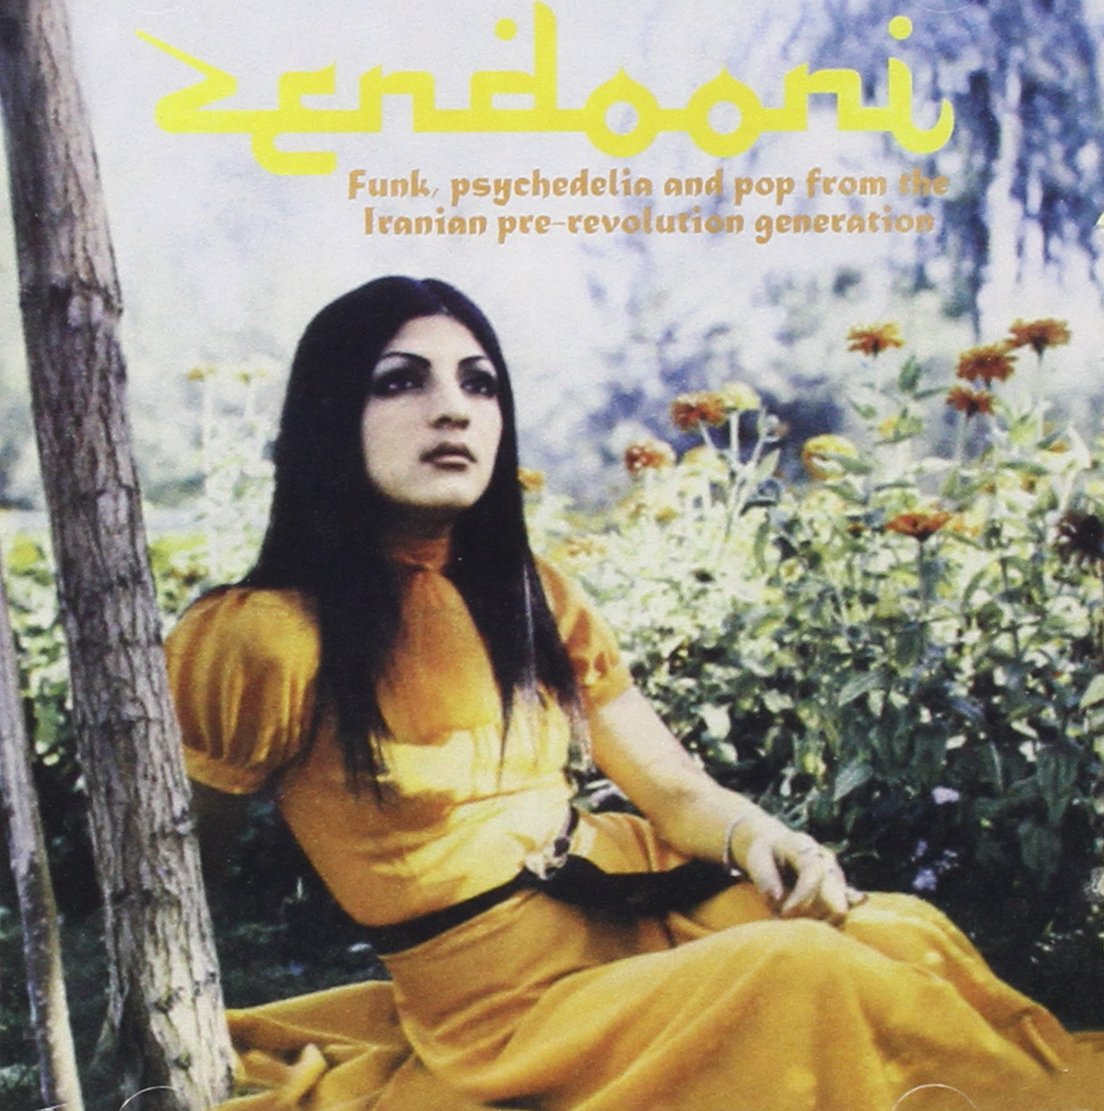 Zendooni: Funk, psychedelia and pop from the Iranian pre-revolution generation by Pharaway Sounds